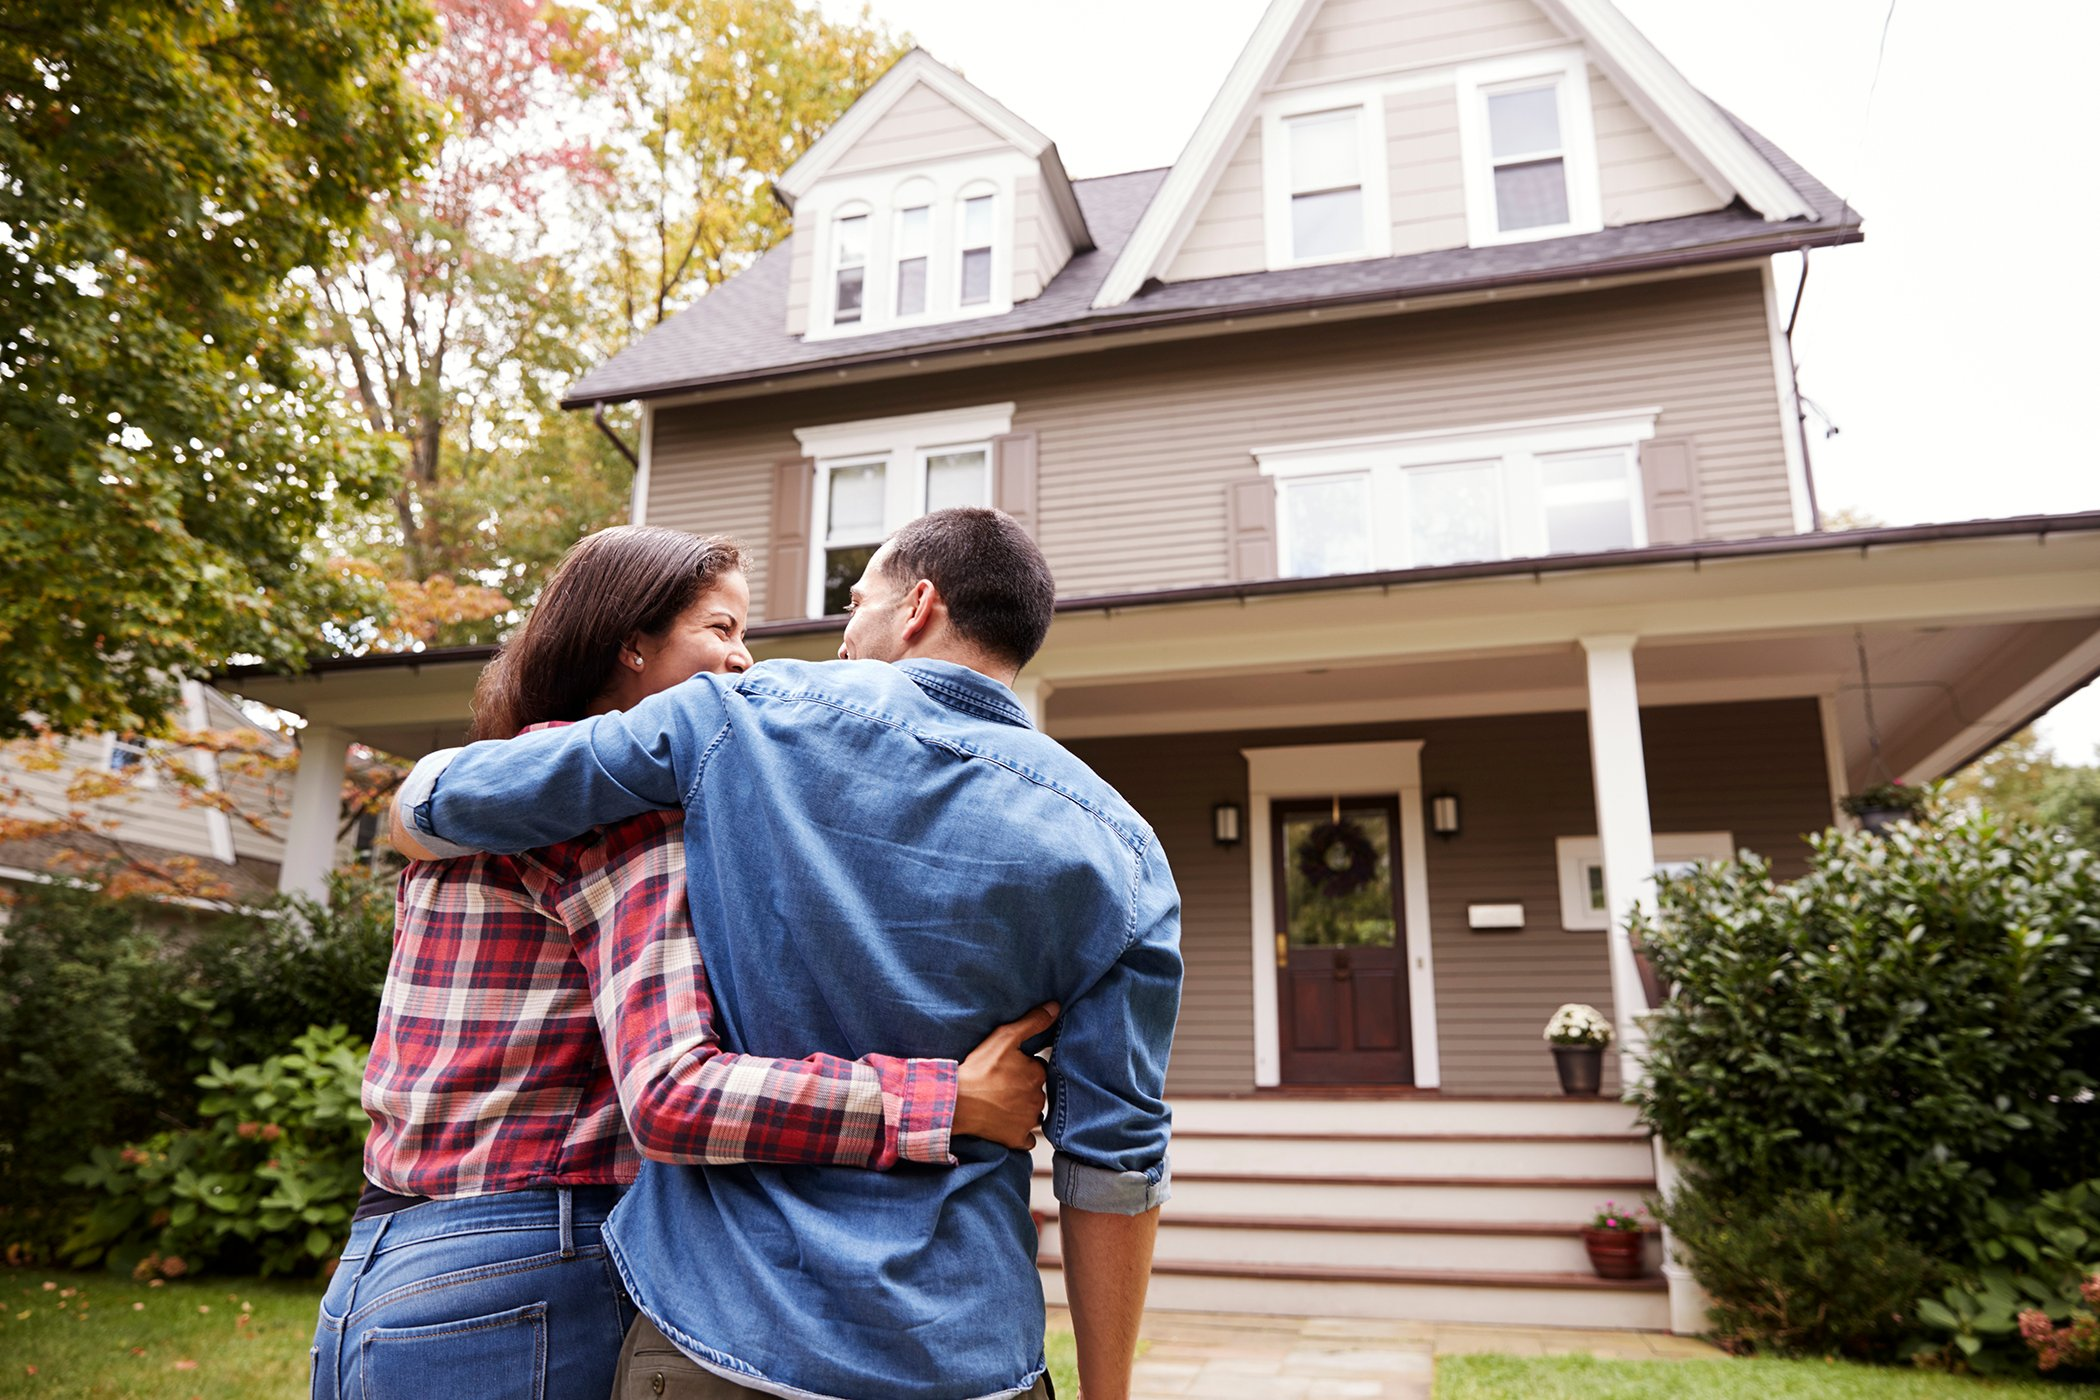 Are We in a Housing Market Bubble? 10 Signs to Watch [2021]